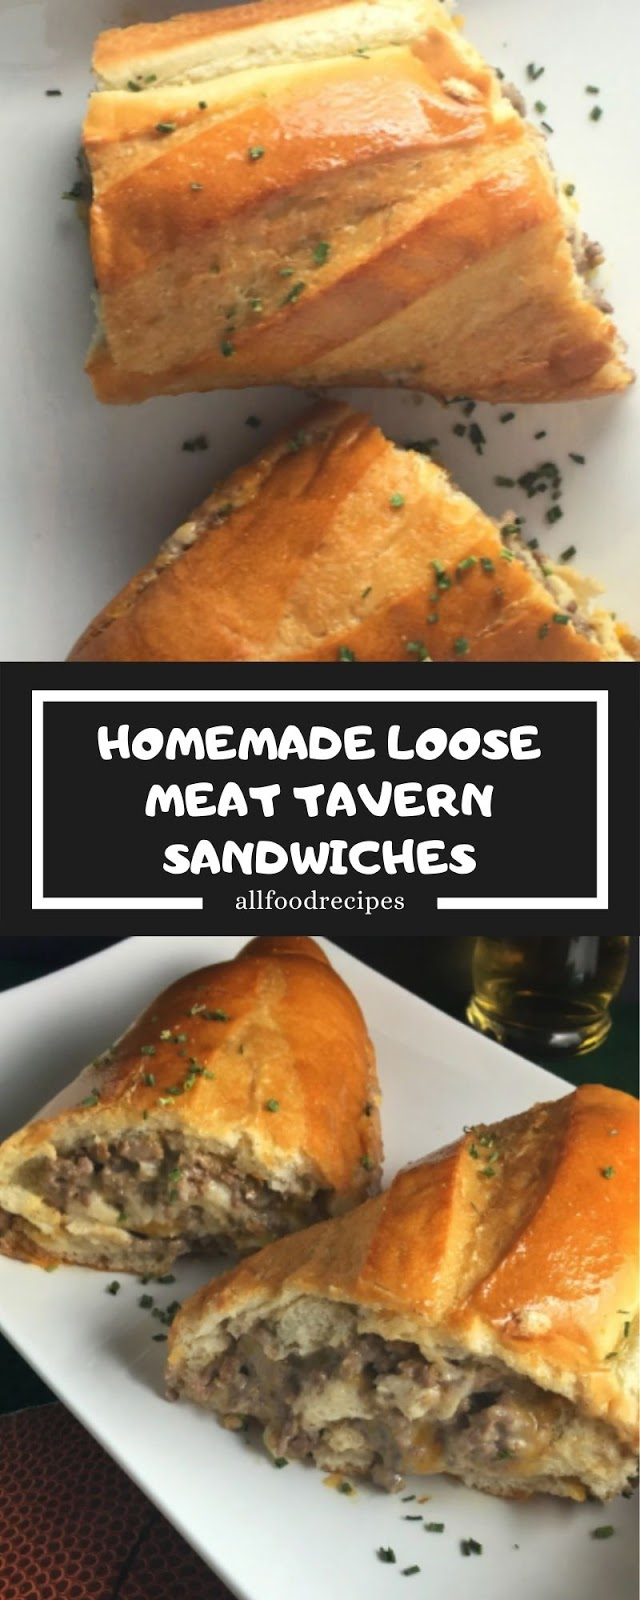 HOMEMADE LOOSE MEAT TAVERN SANDWICHES